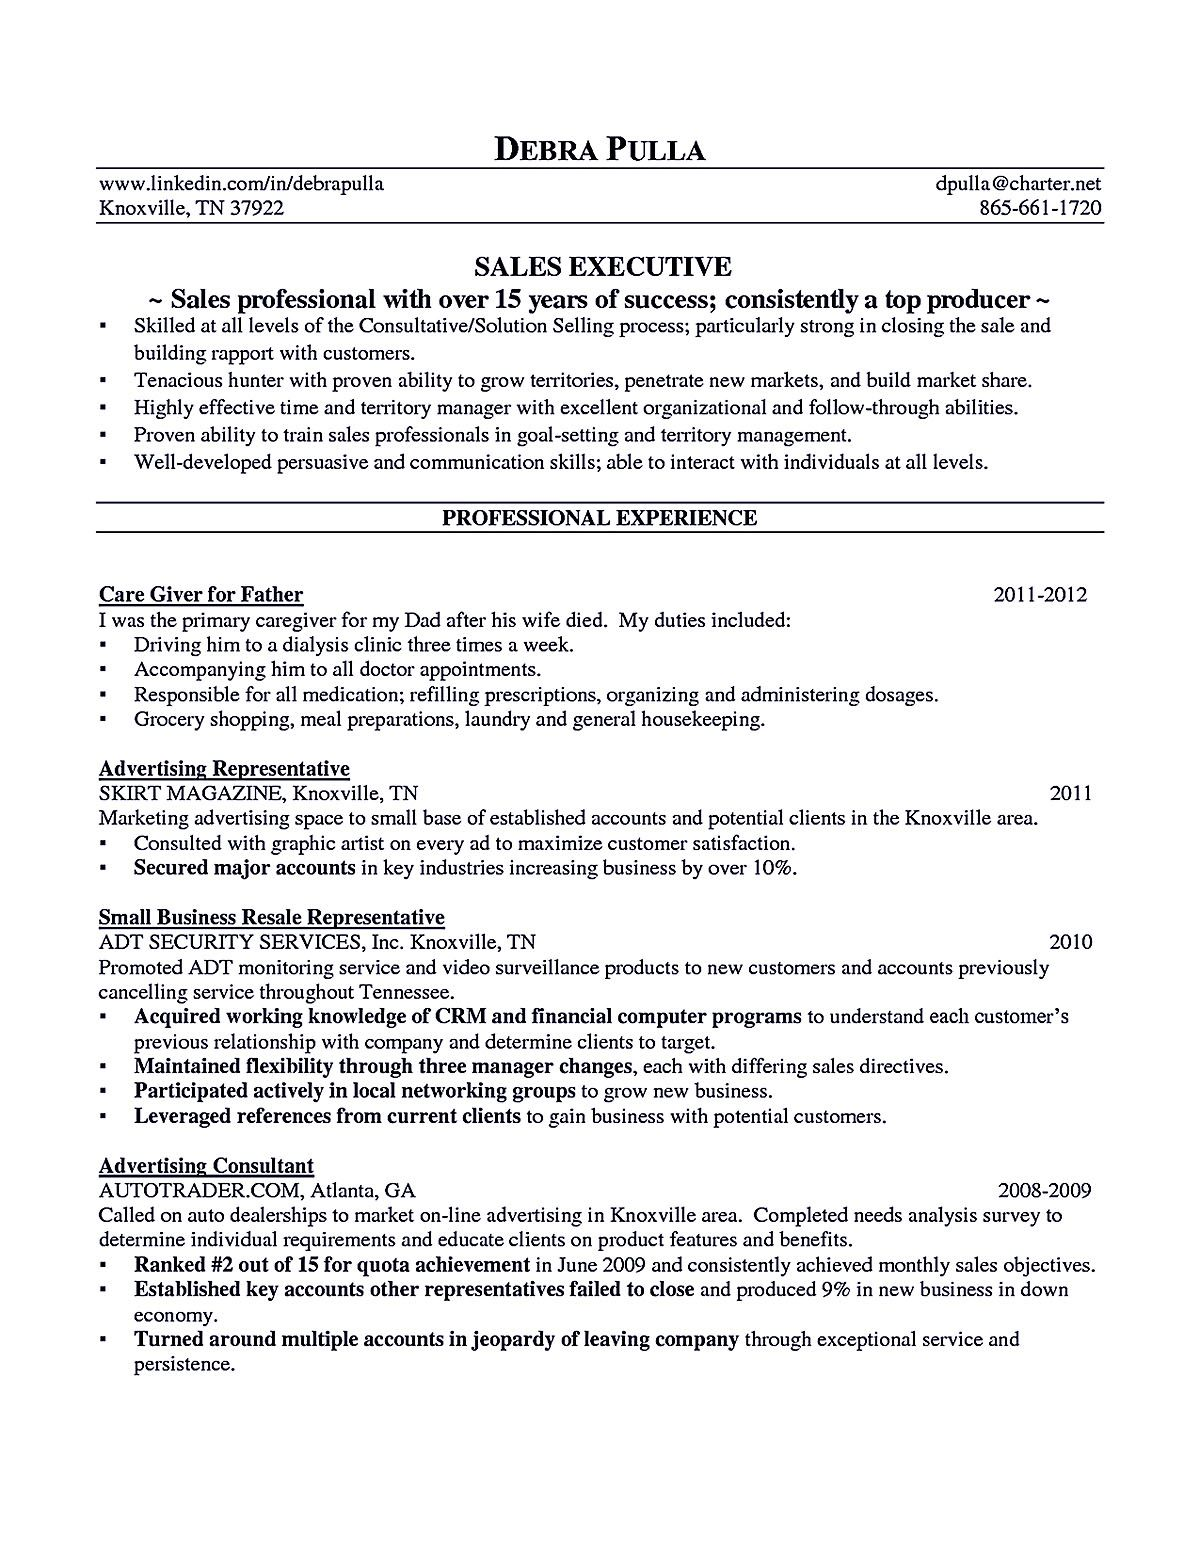 General Resume Objective Examples Mesmerizing Account Executive Resume Is Like Your Weapon To Get The Job You Want